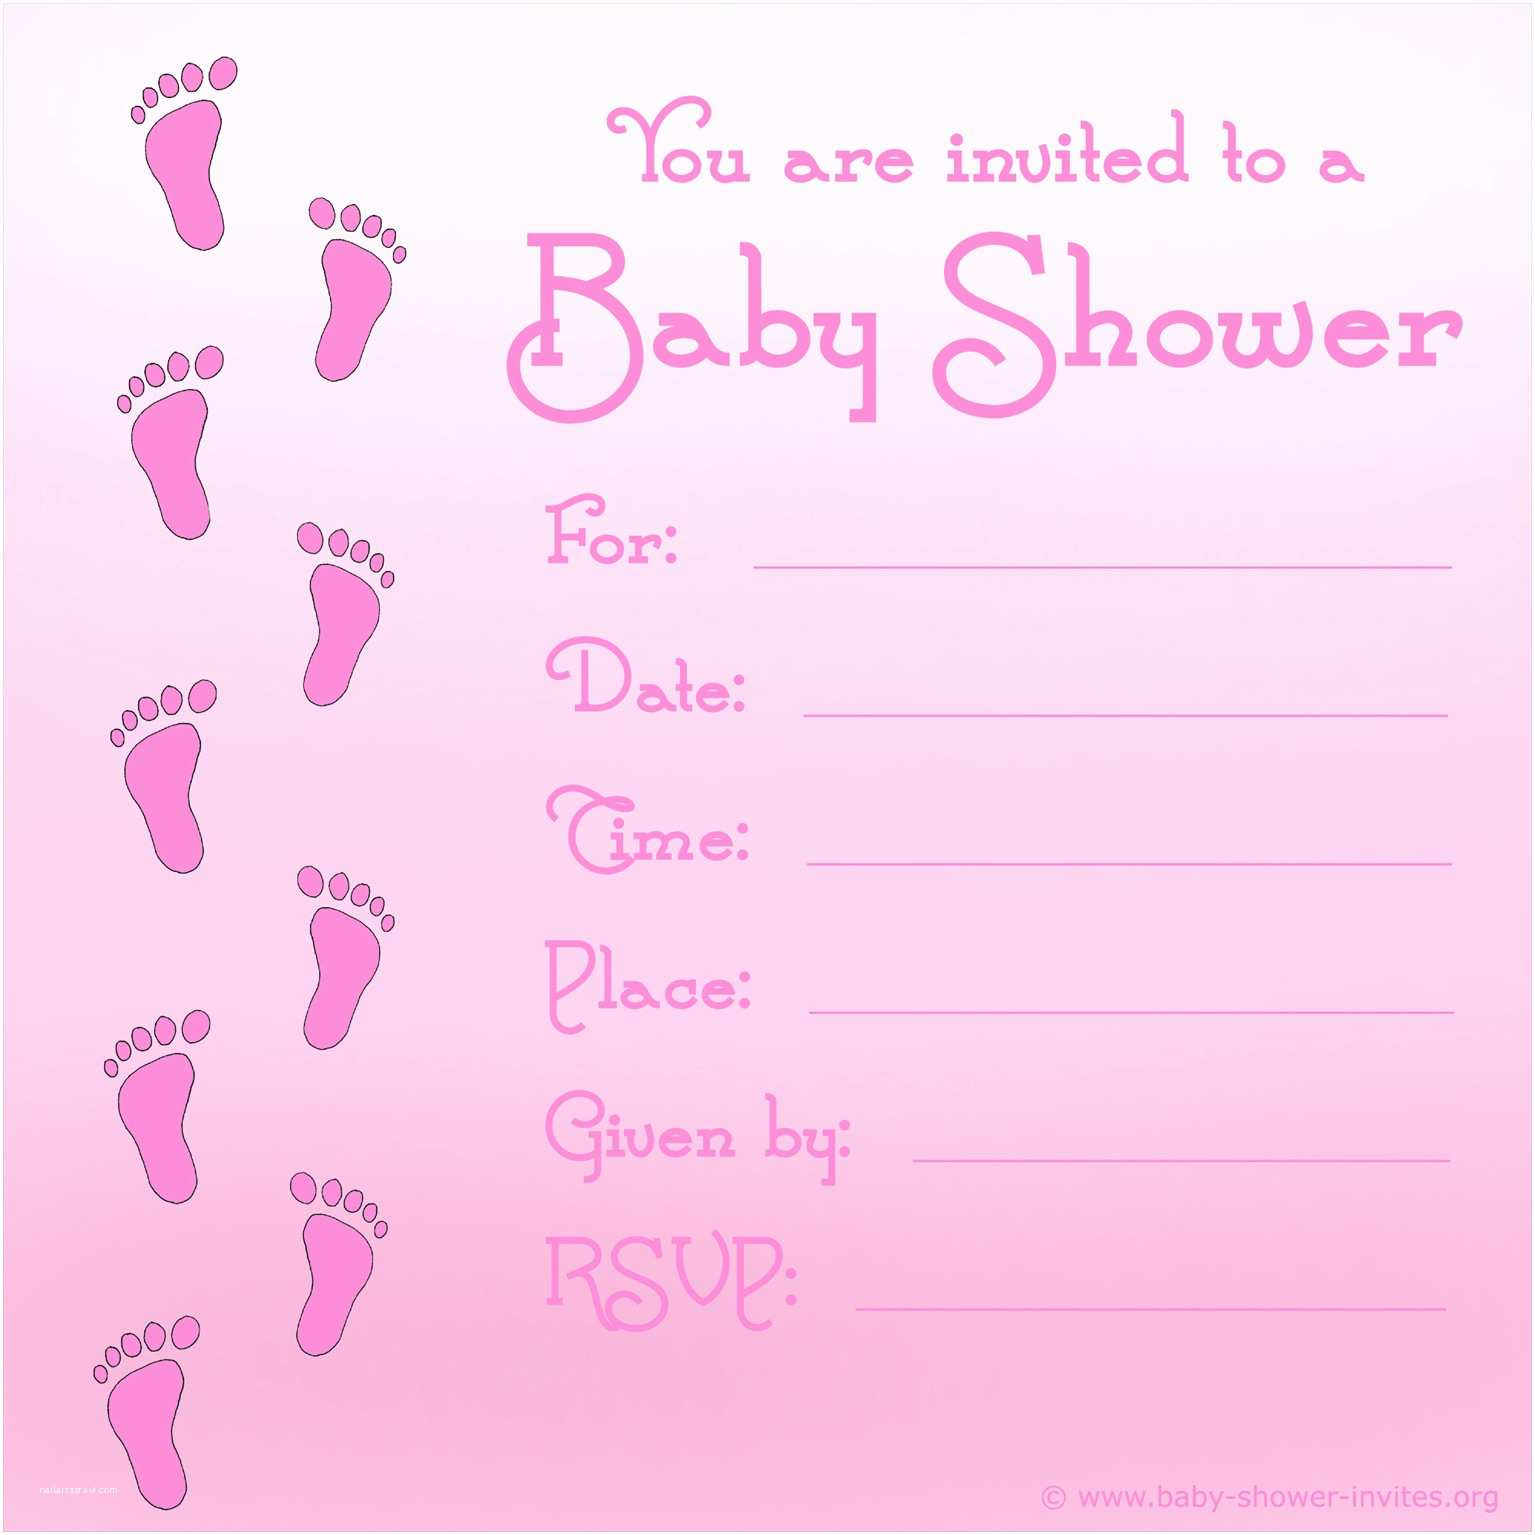 Free Baby Shower Invitations Free Printable Baby Shower Invitations for Girls